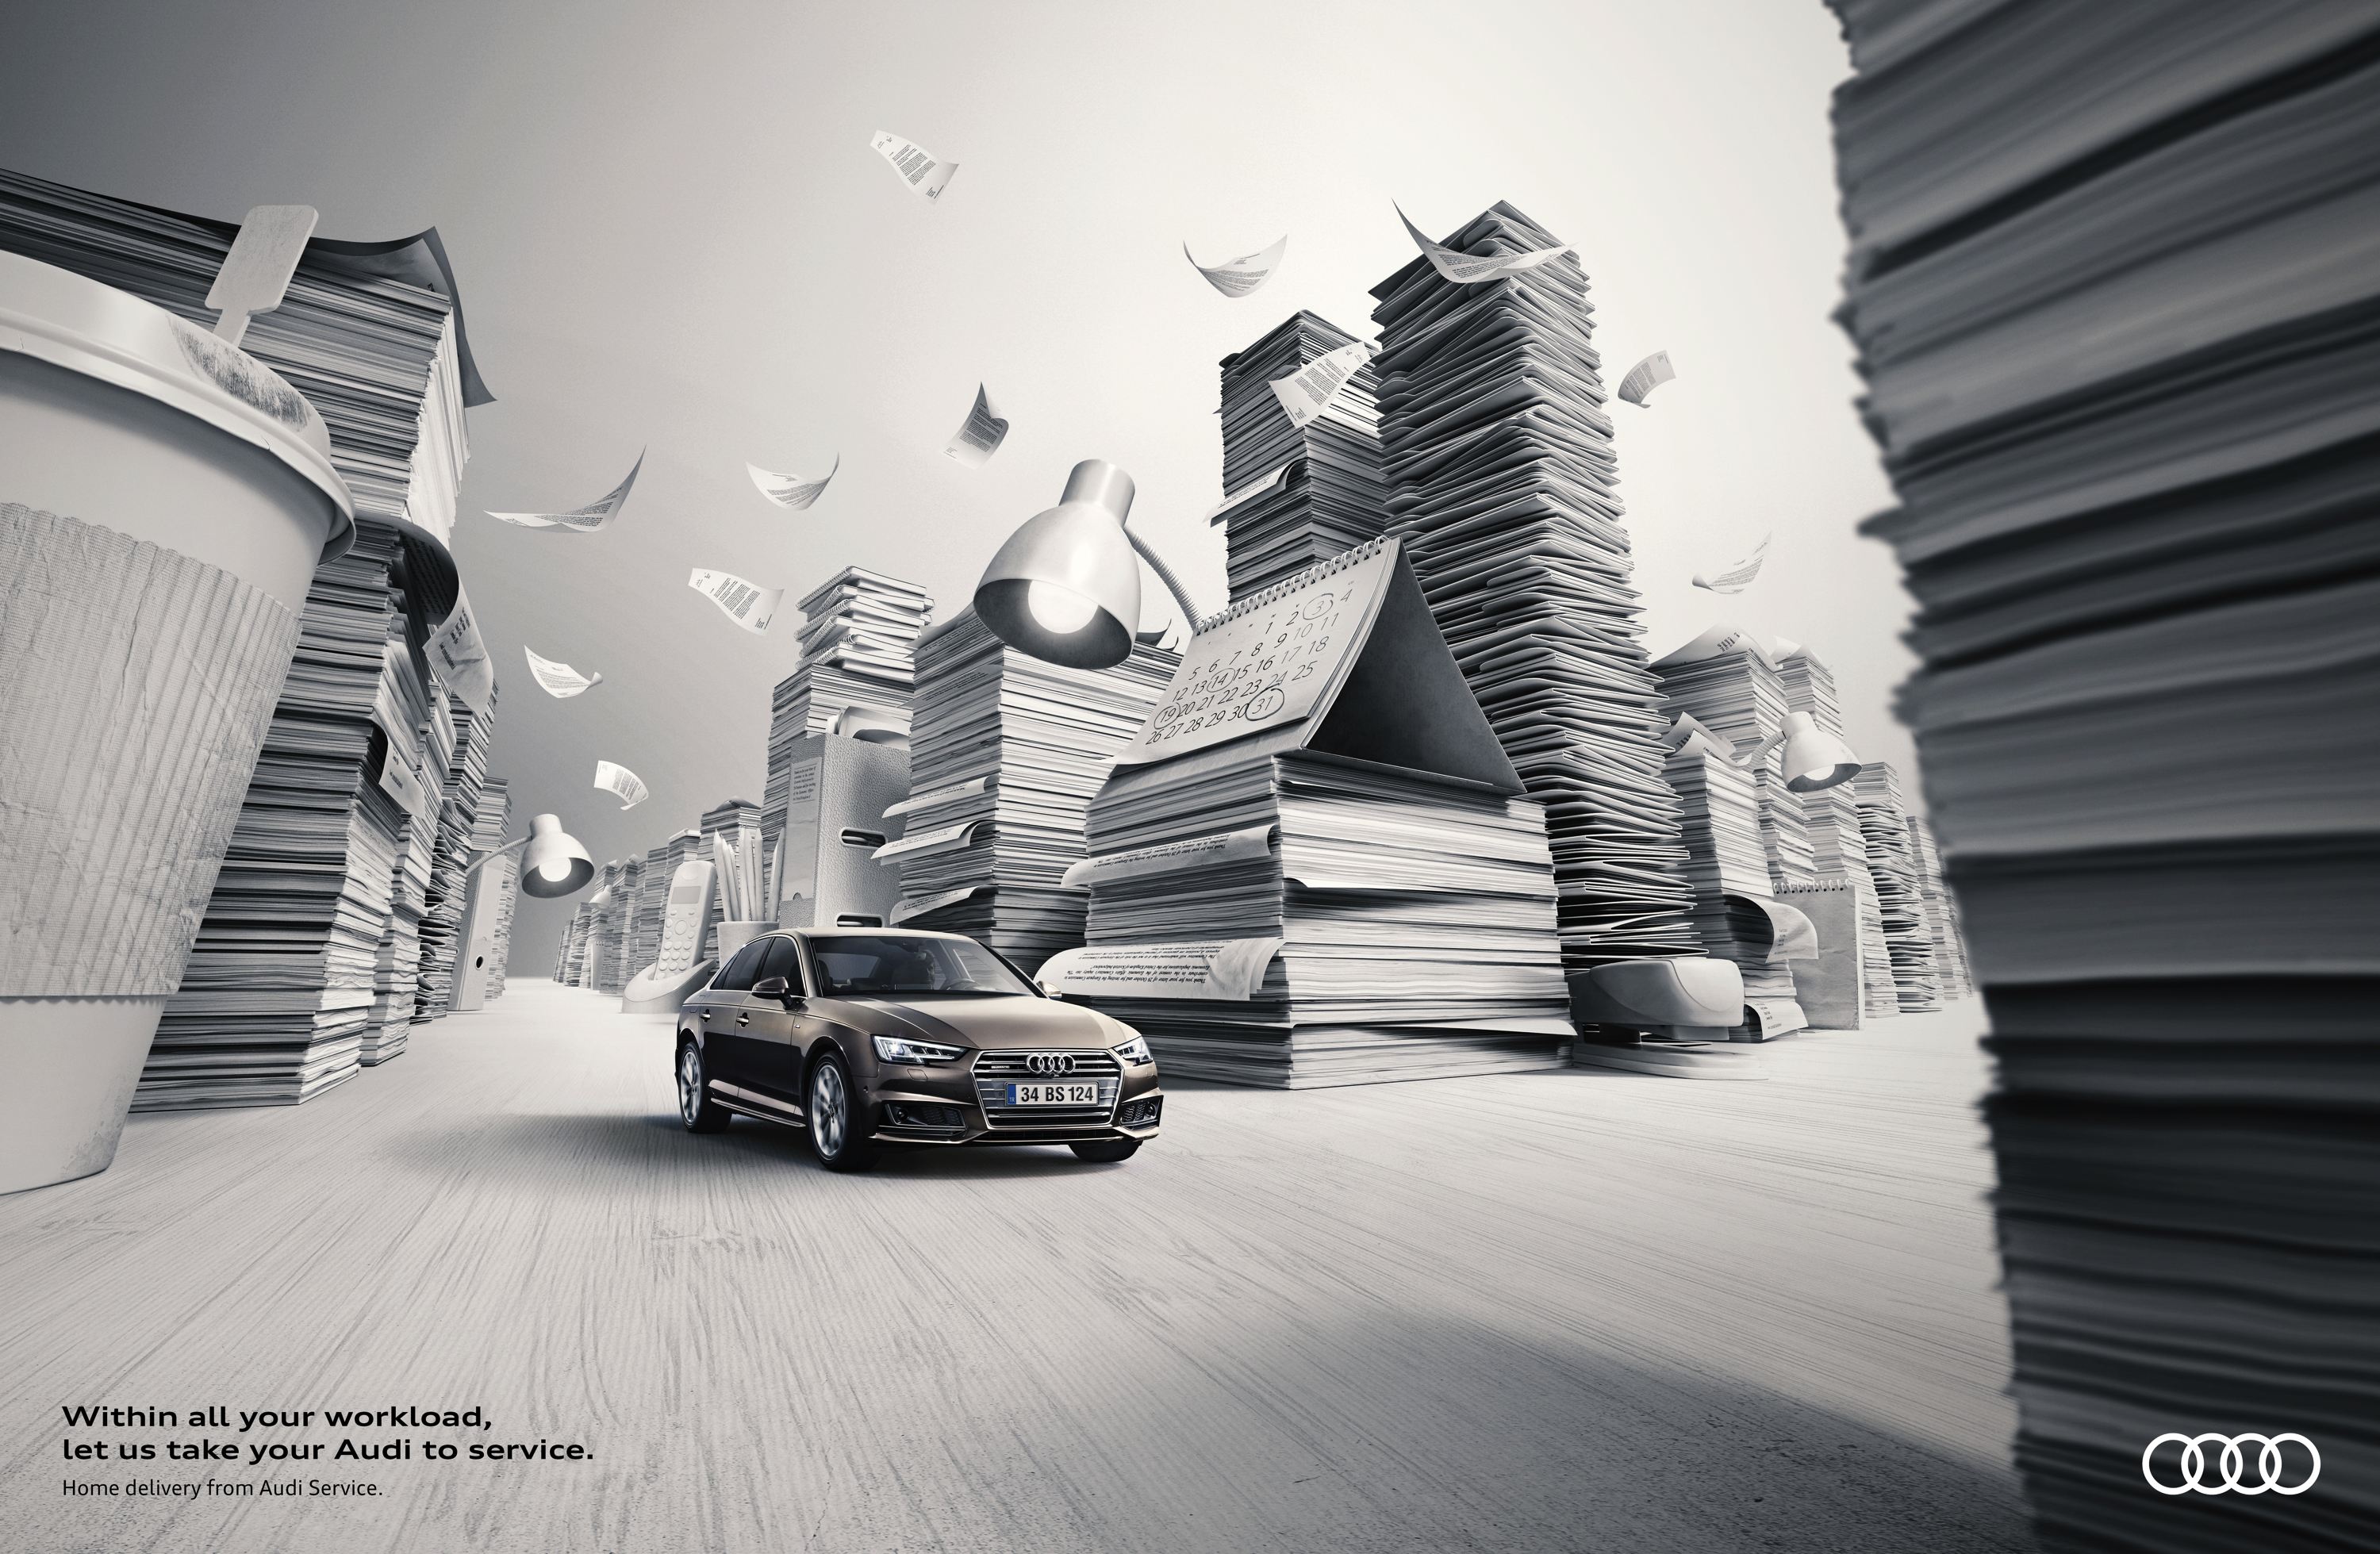 Audi Outdoor Advert By Tribal Home Delivery Service Ads Of The World - Audi home